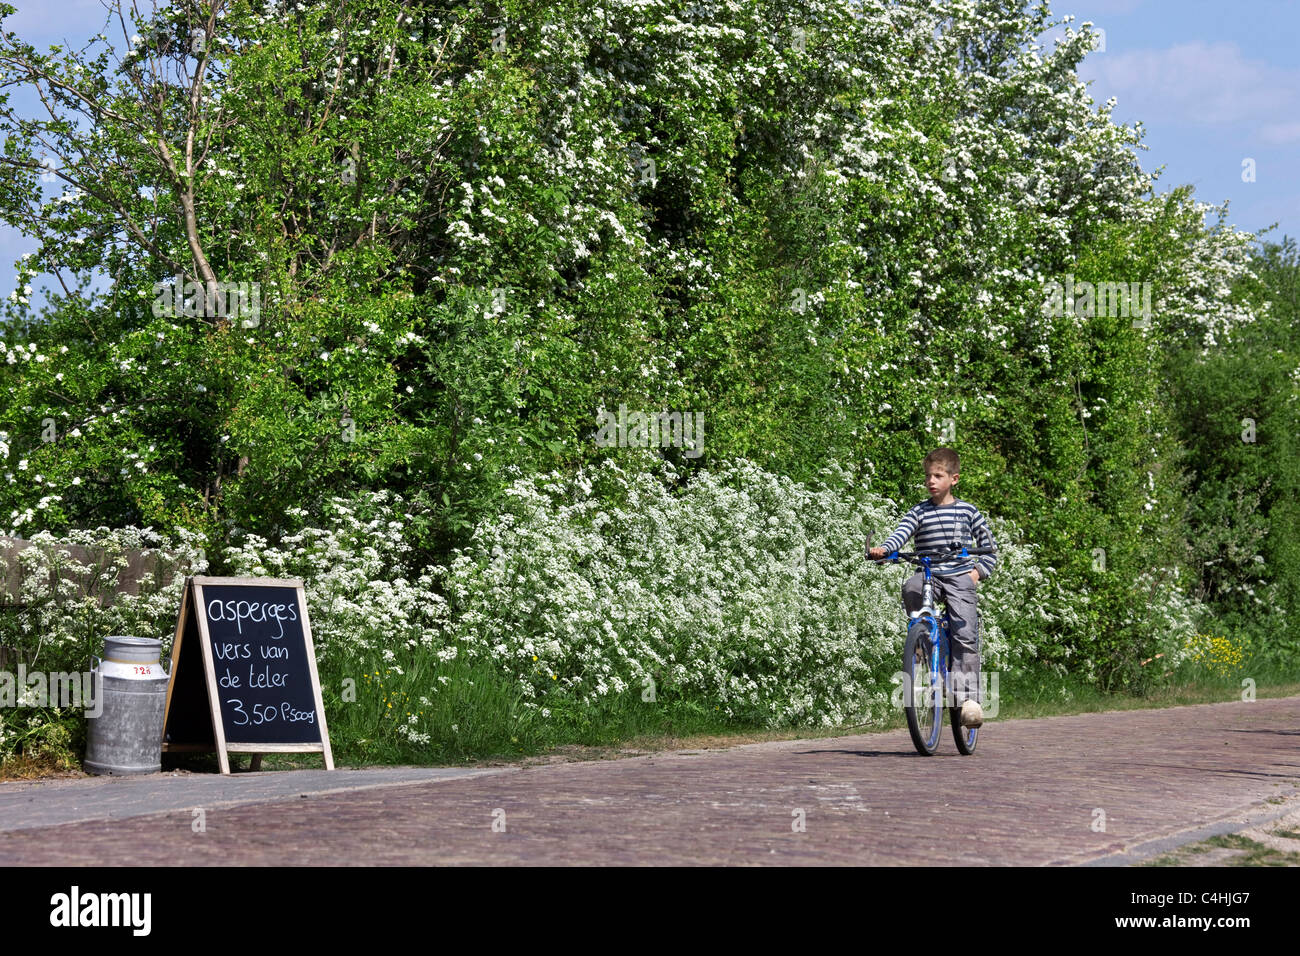 Farmer's notice board and Dutch boy with wooden clogs riding bicycle at Schouwen, Schouwen-Duiveland, Zeeland, - Stock Image